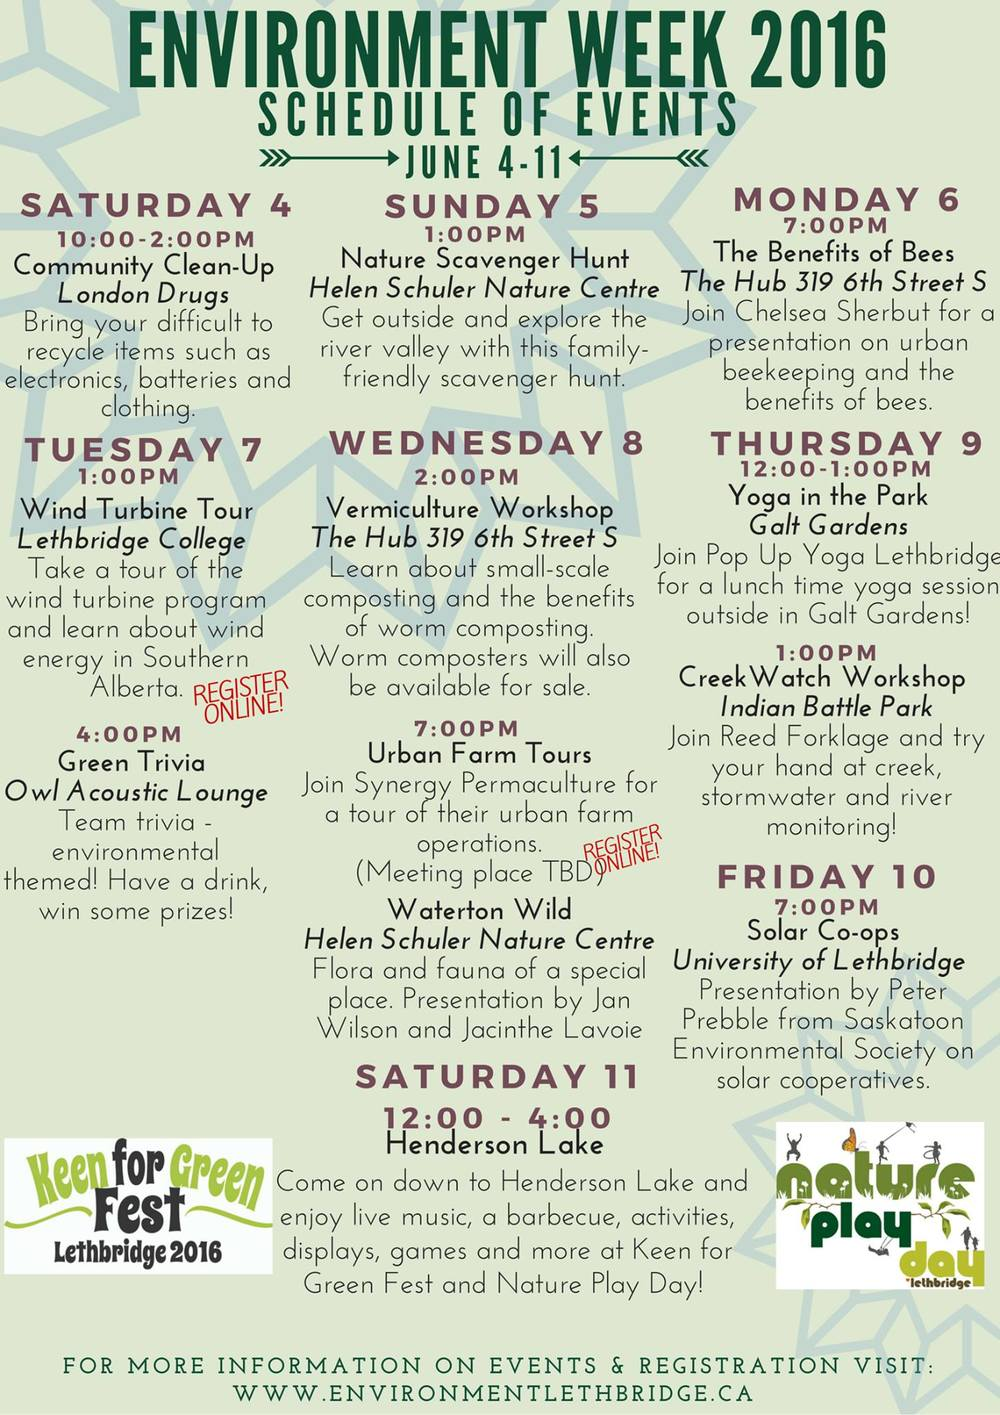 Schedule of Events for Environment Week